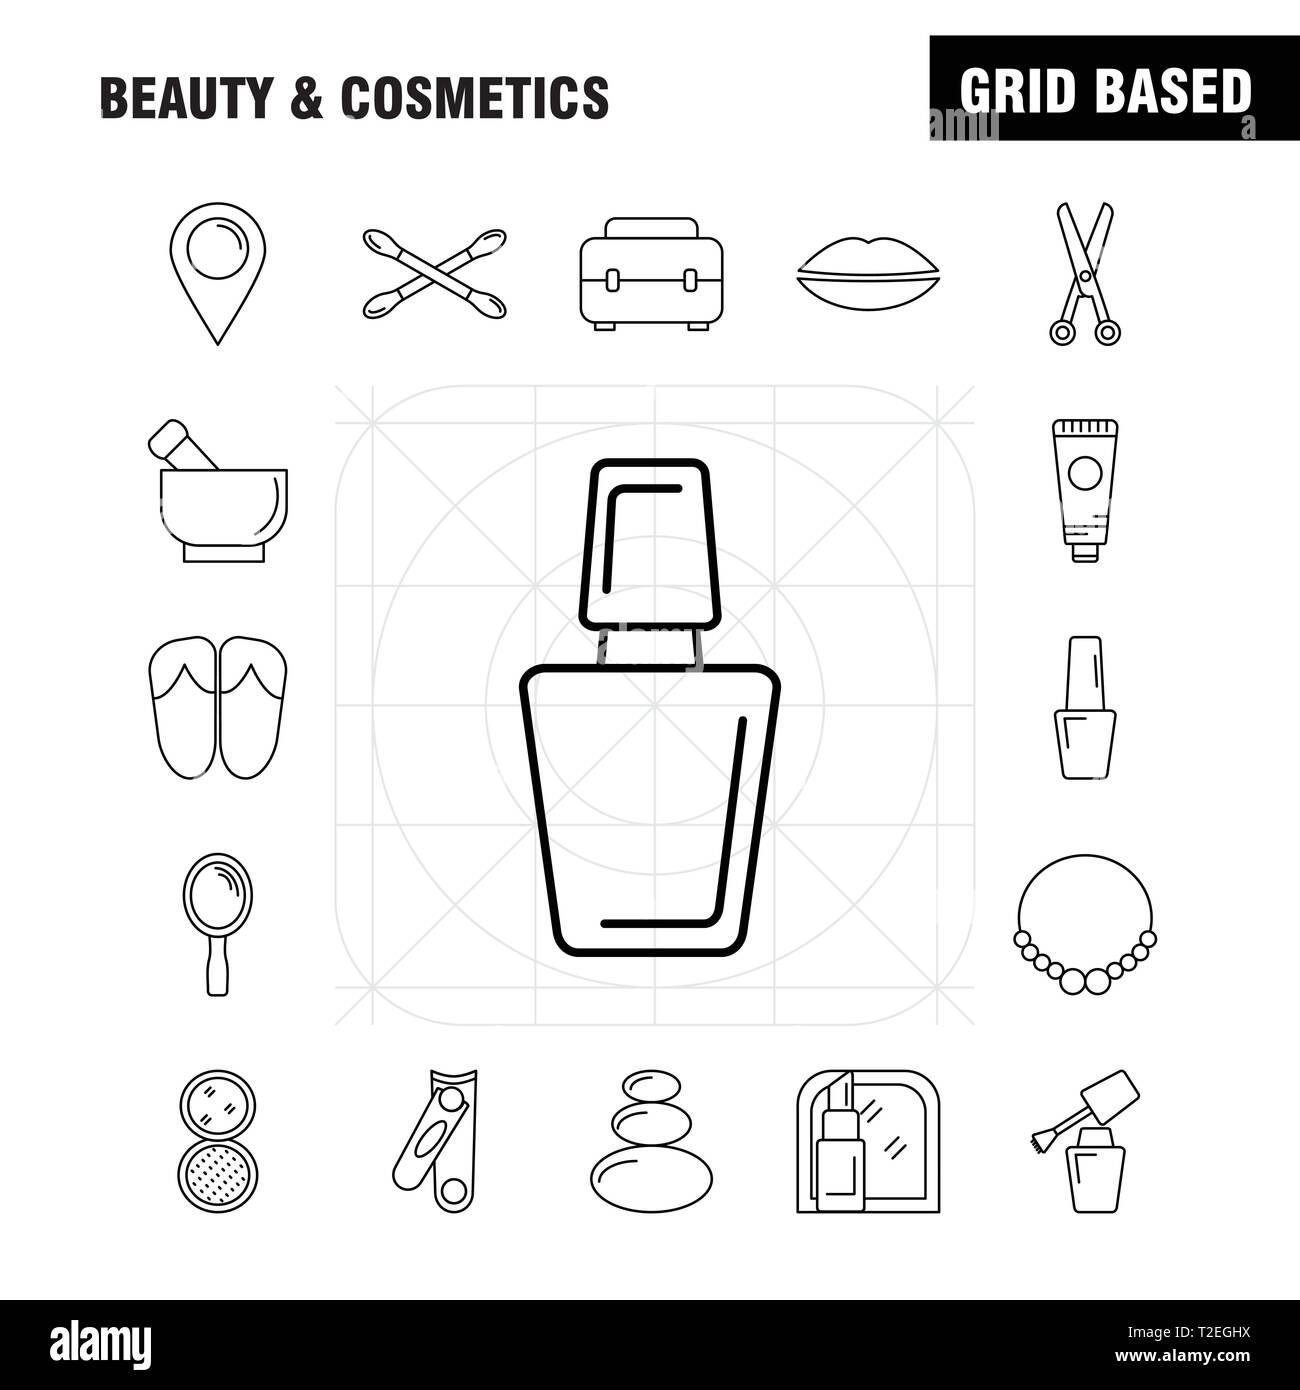 Beauty And Cosmetics Line Icon for Web, Print and Mobile UX/UI Kit. Such as: Jewel, Necklace, Present, Lips, Cosmetic, Mouth, Beauty, Clothes, Pictogr - Stock Image